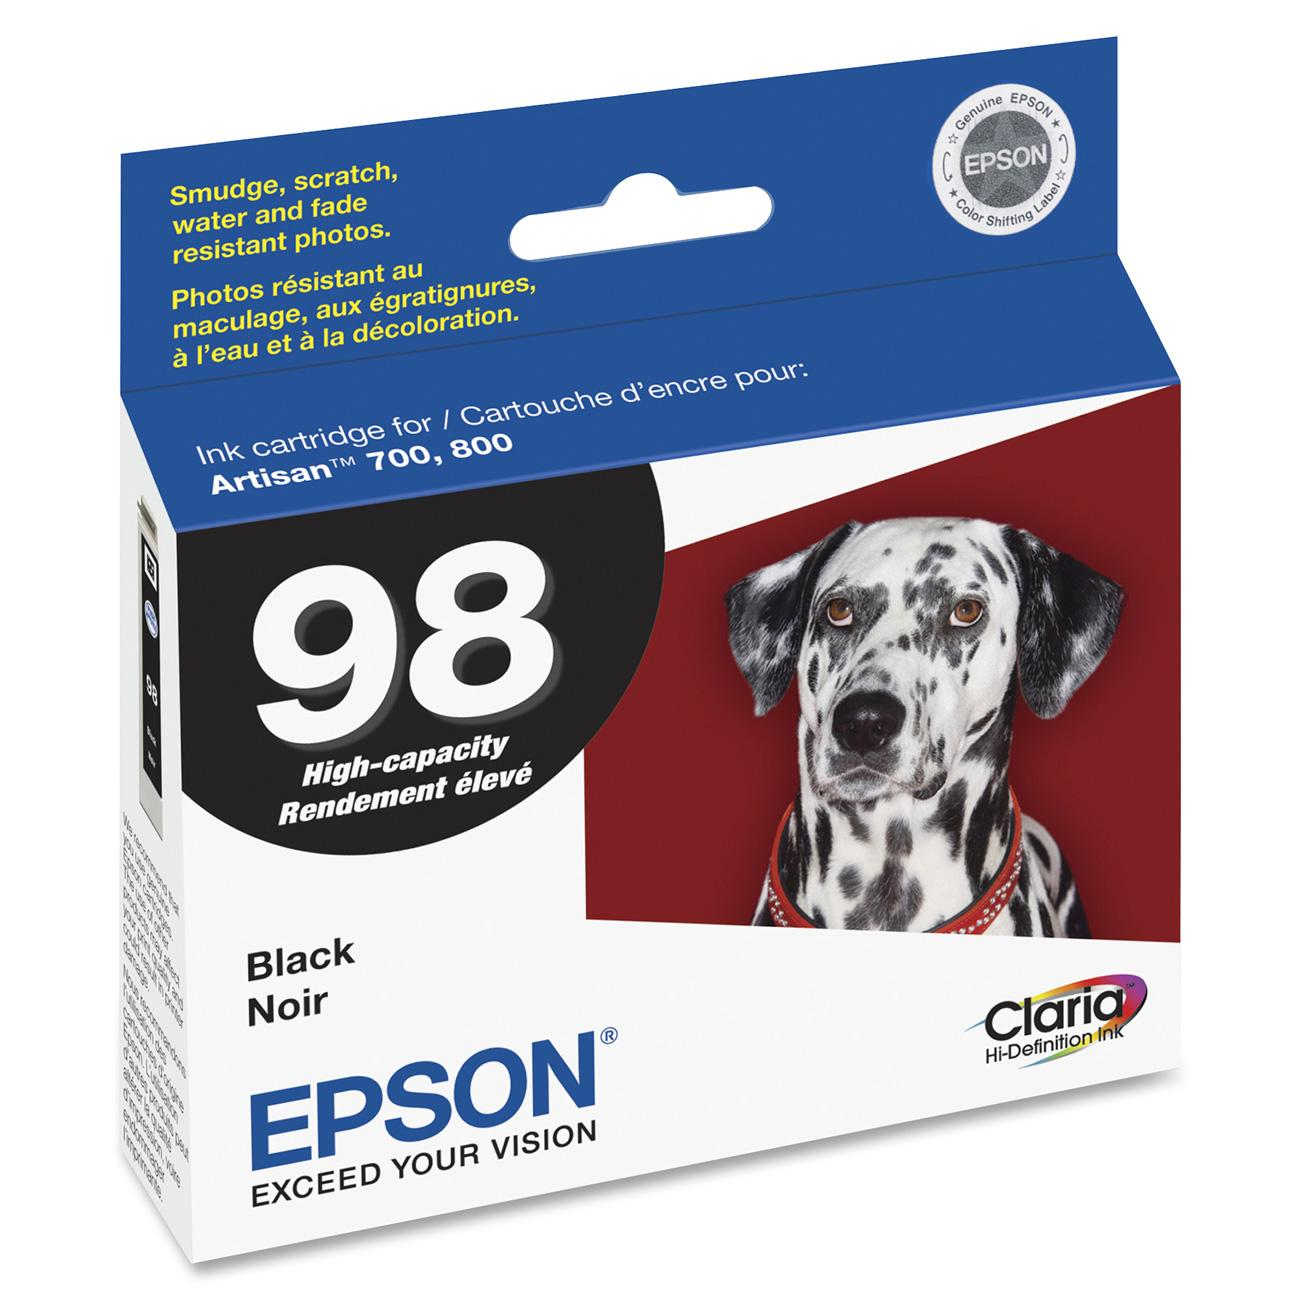 Epson Claria Original Ink Cartridge